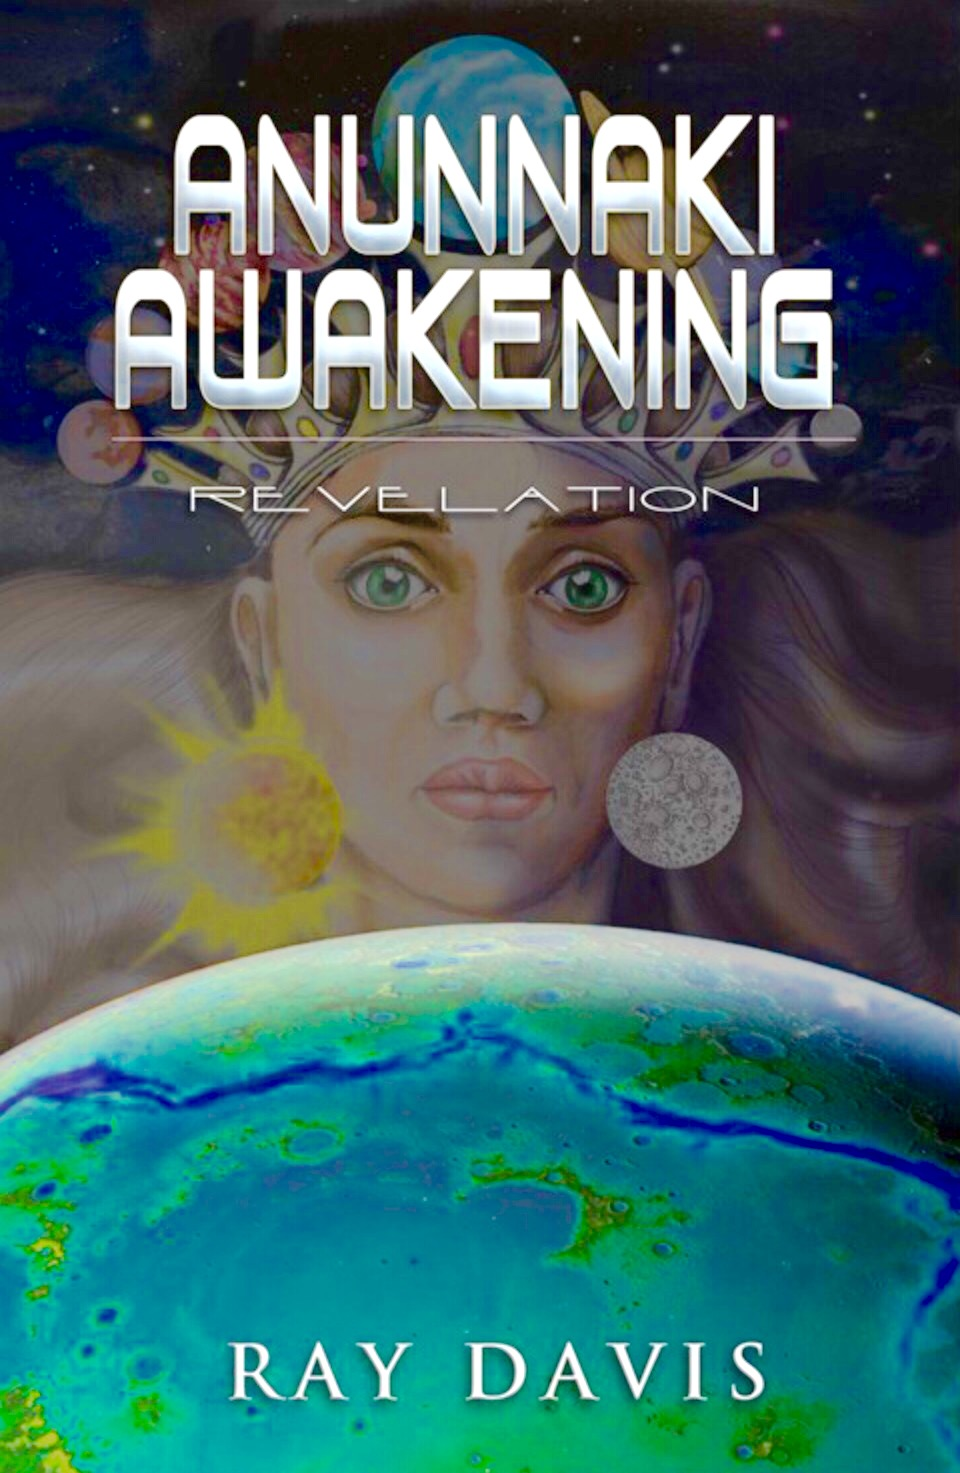 anunnaki_awakening_full_cover_full_color